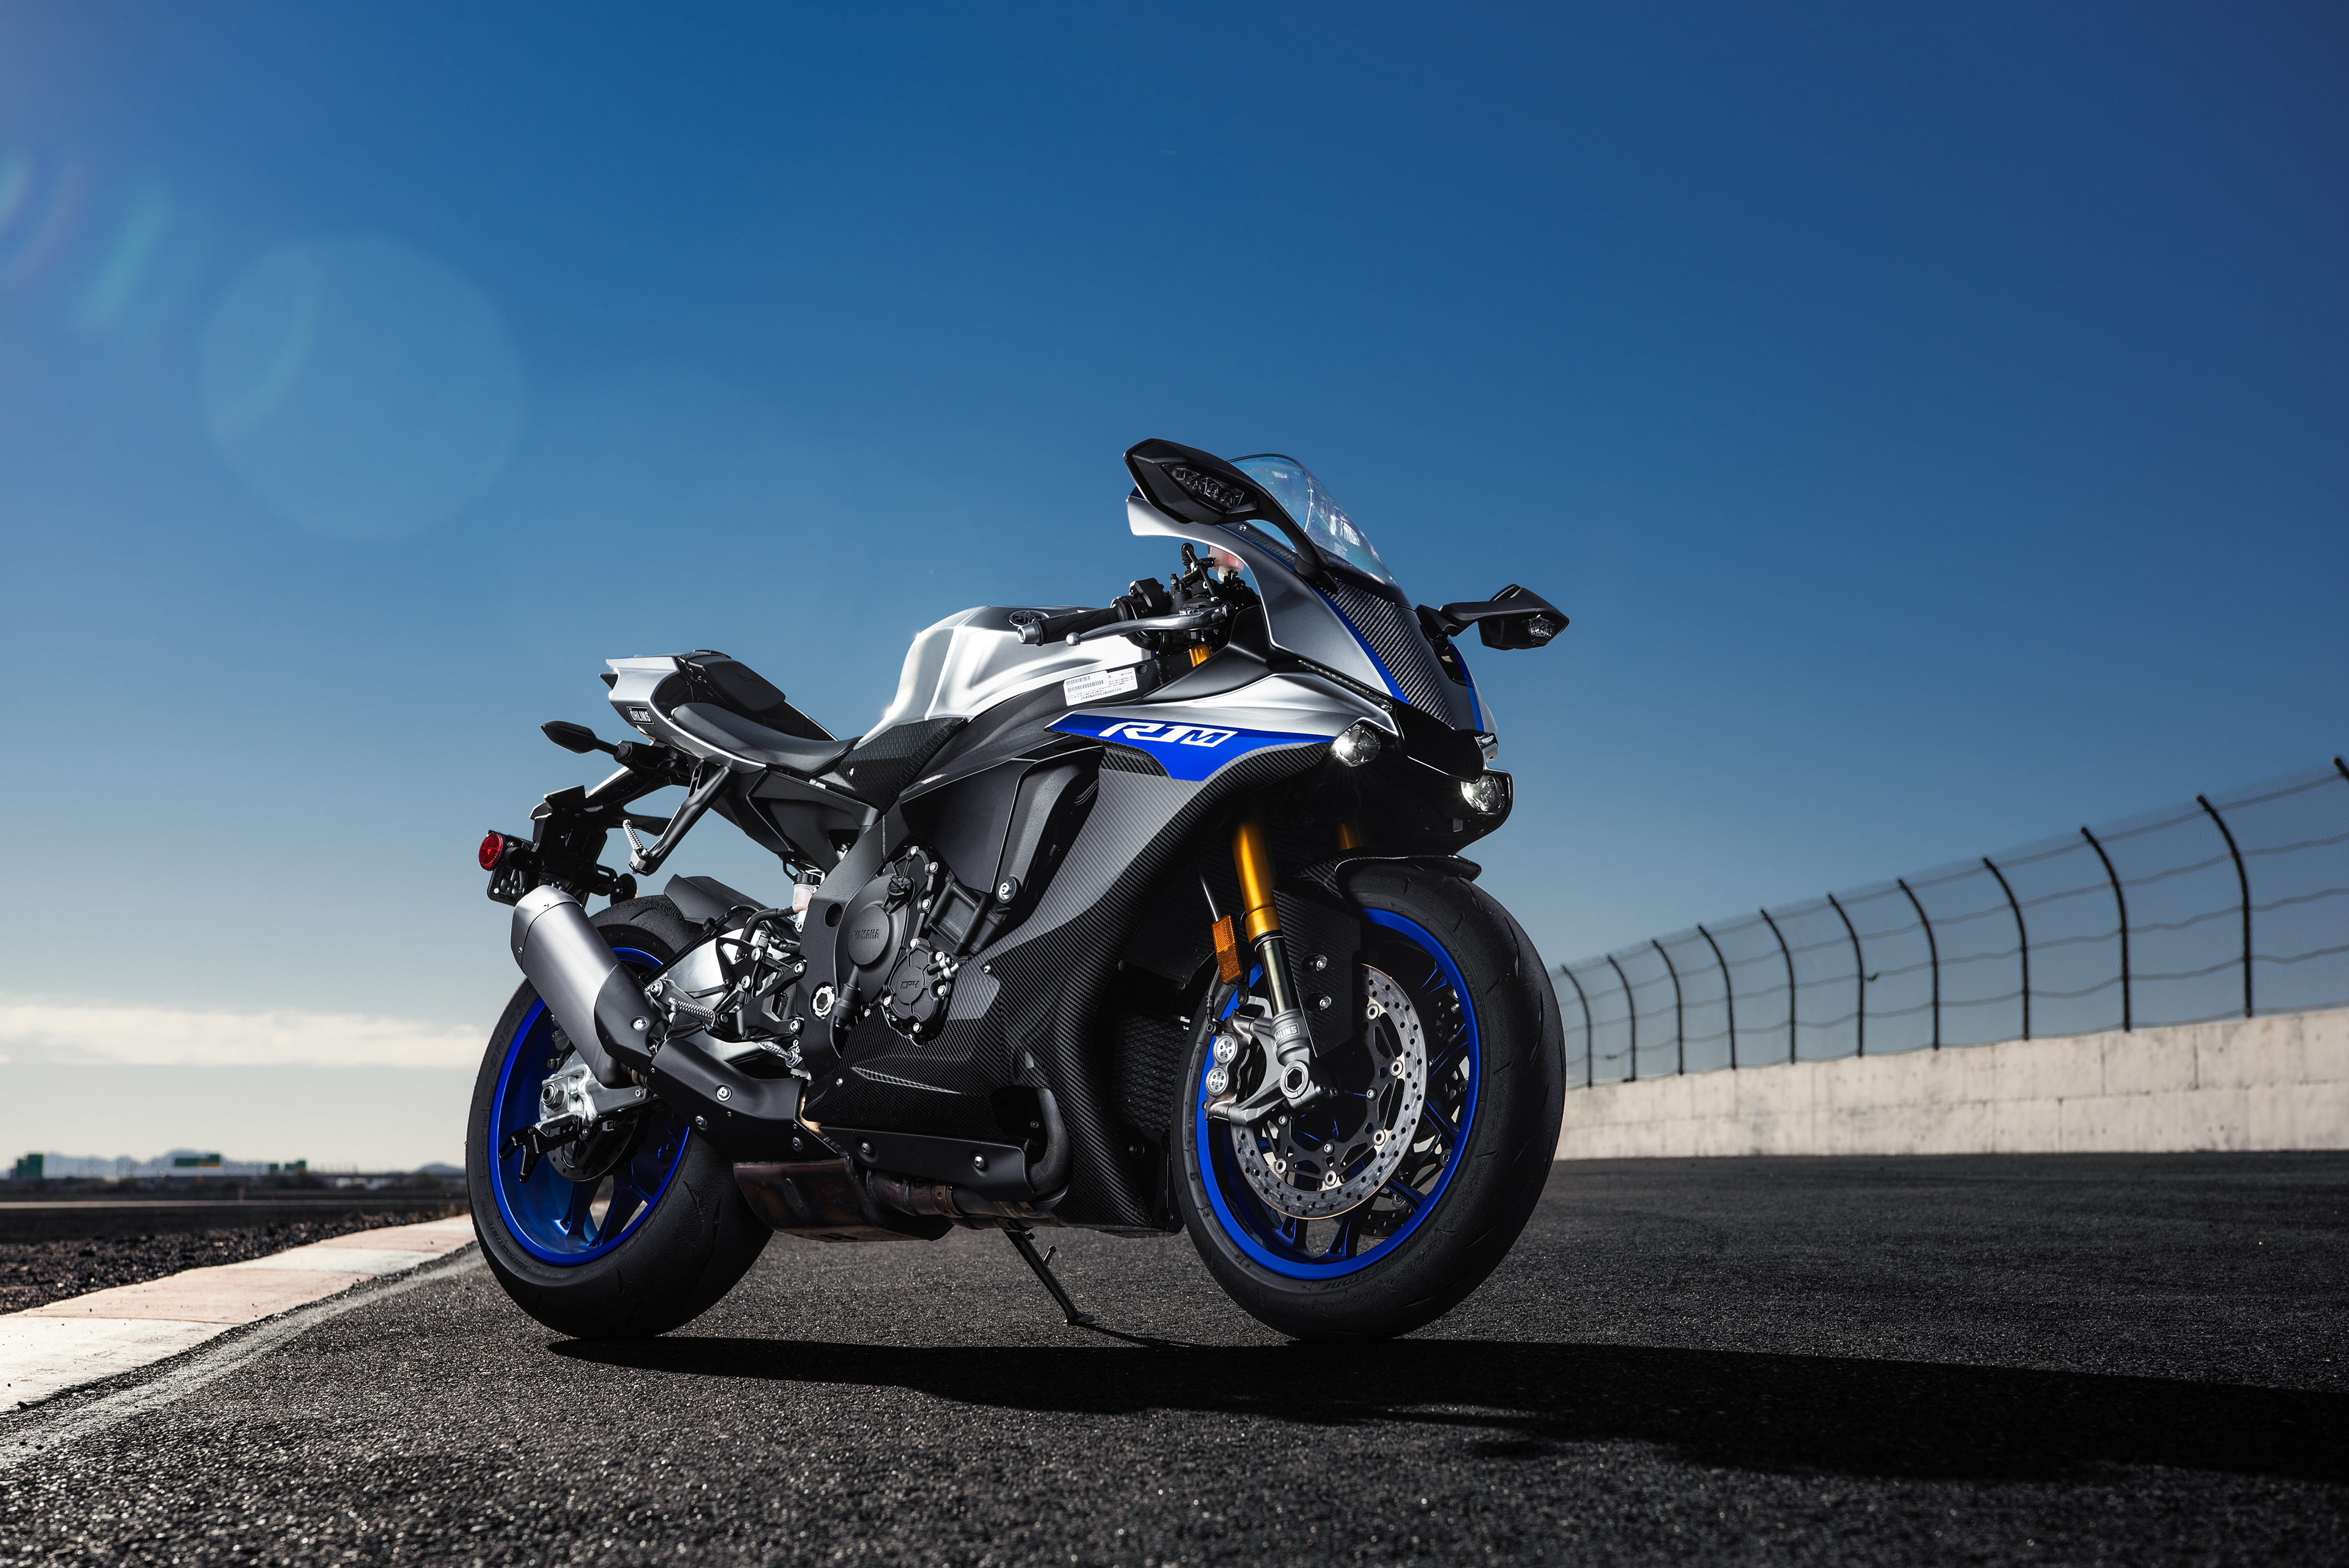 Yamaha R1m 4k Hd Bikes 4k Wallpapers Images Backgrounds Photos And Pictures